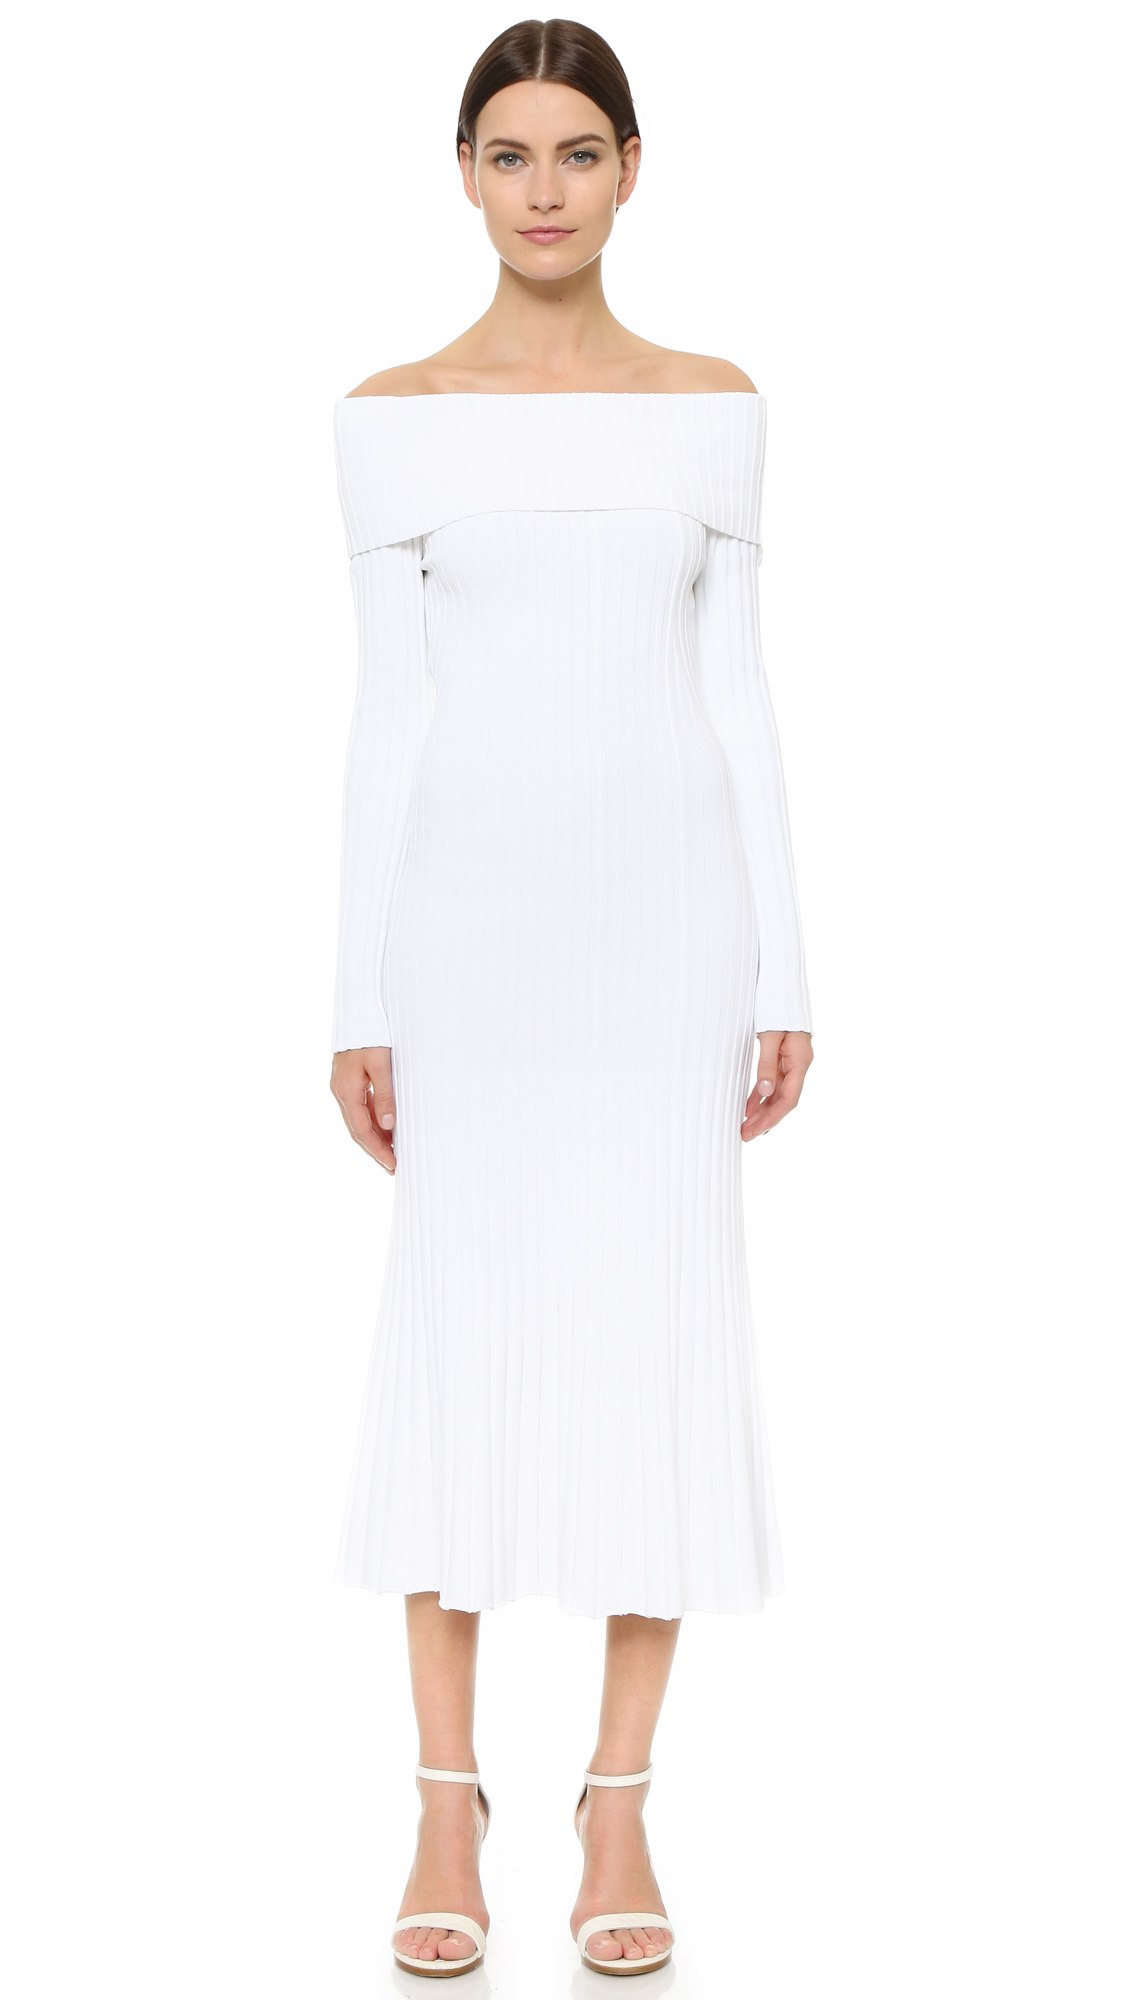 This ribbed Prabal Gurung sweater dress is fashioned with a chic fold over neckline. Slim silhouette with swingy skirt. Long sleeves. Unlined. Fabric: Slinky double knit. 75% viscose/25% polyamide. Dry clean. Imported, China. Measurements Length: 42.25in / 107cm,